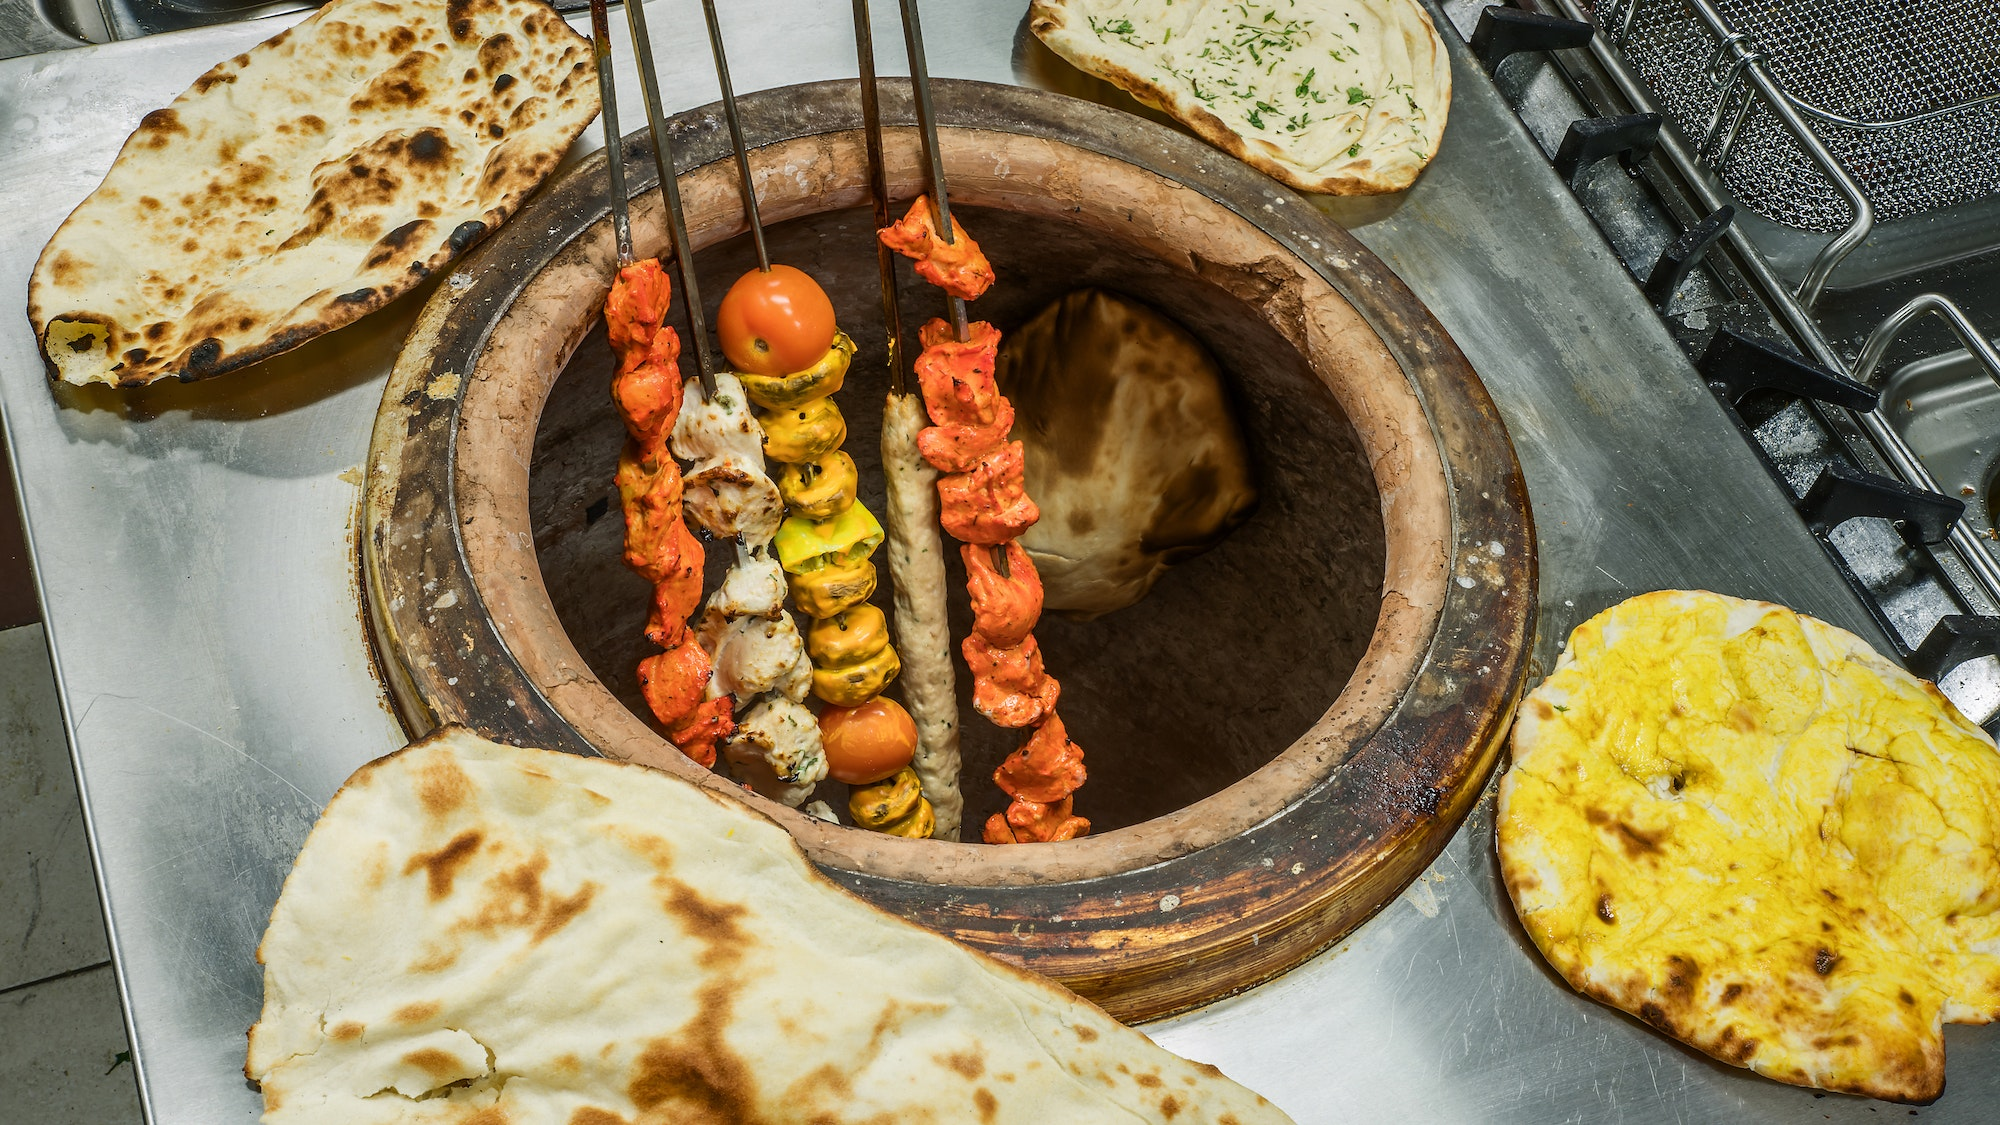 Skewered meat sits directly on the flame in a tandoor oven.